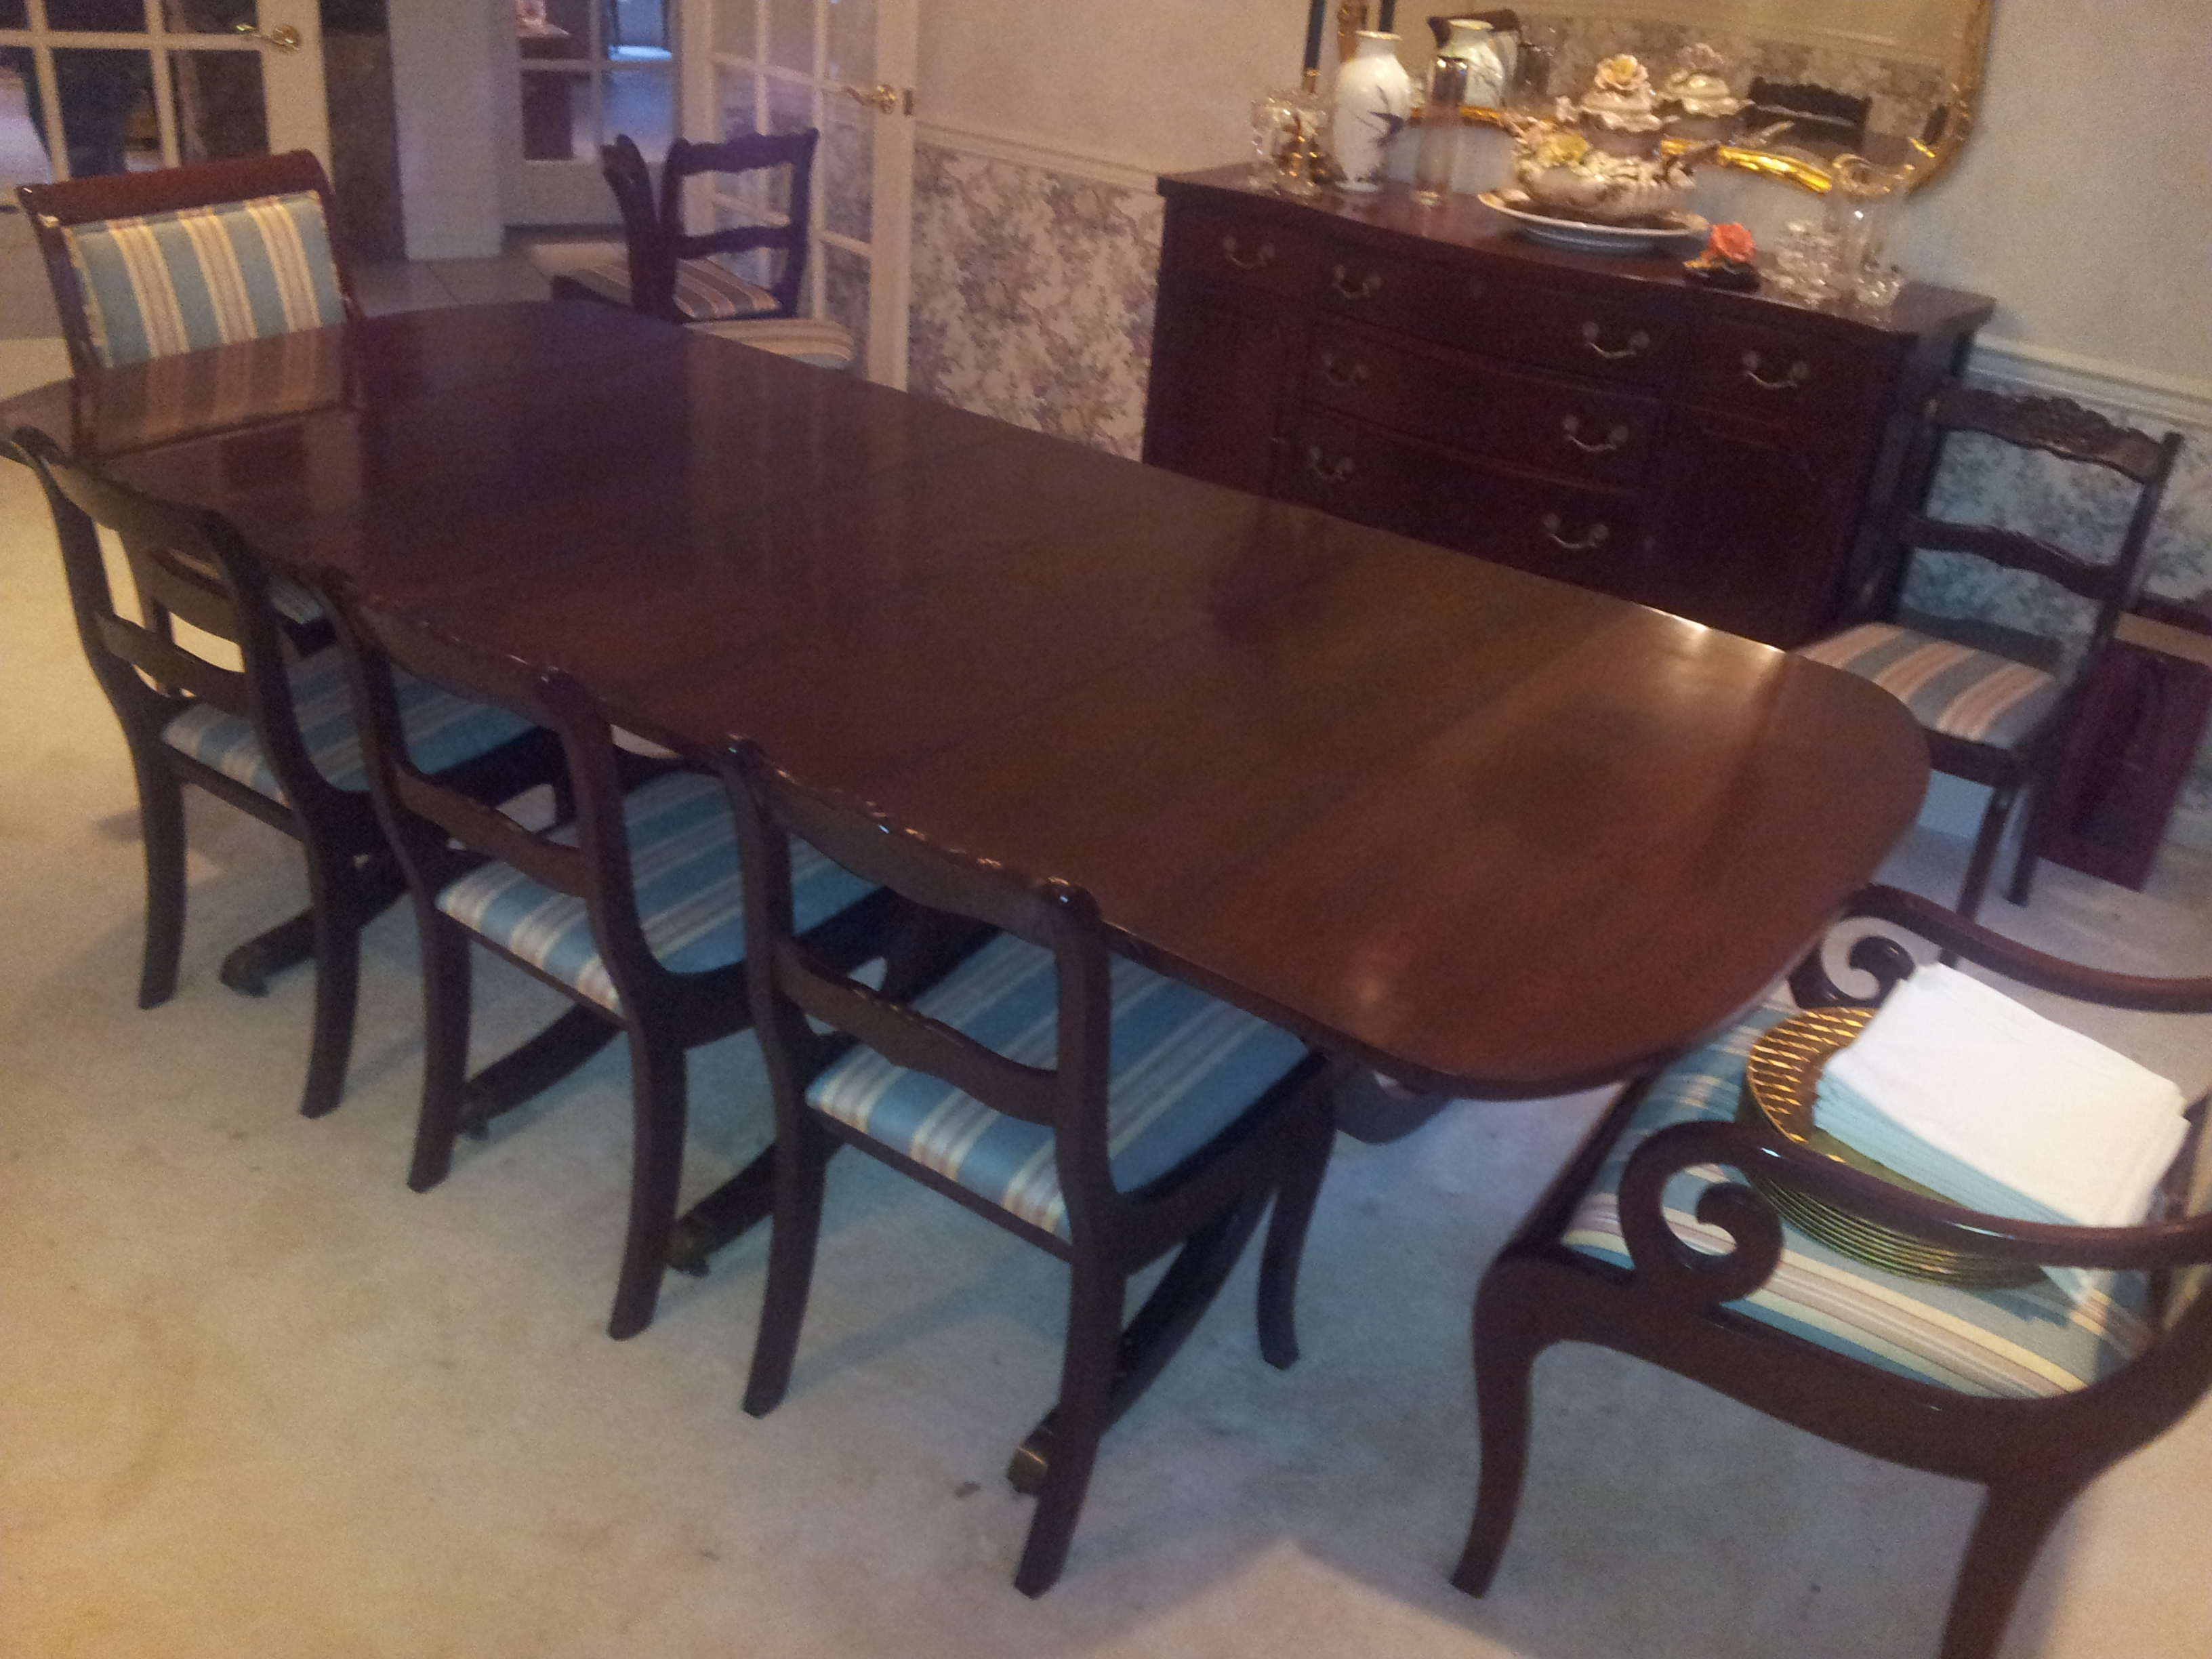 Surprising 1930S Duncan Phyfe Style Dining Room Set Antique Appraisal Machost Co Dining Chair Design Ideas Machostcouk